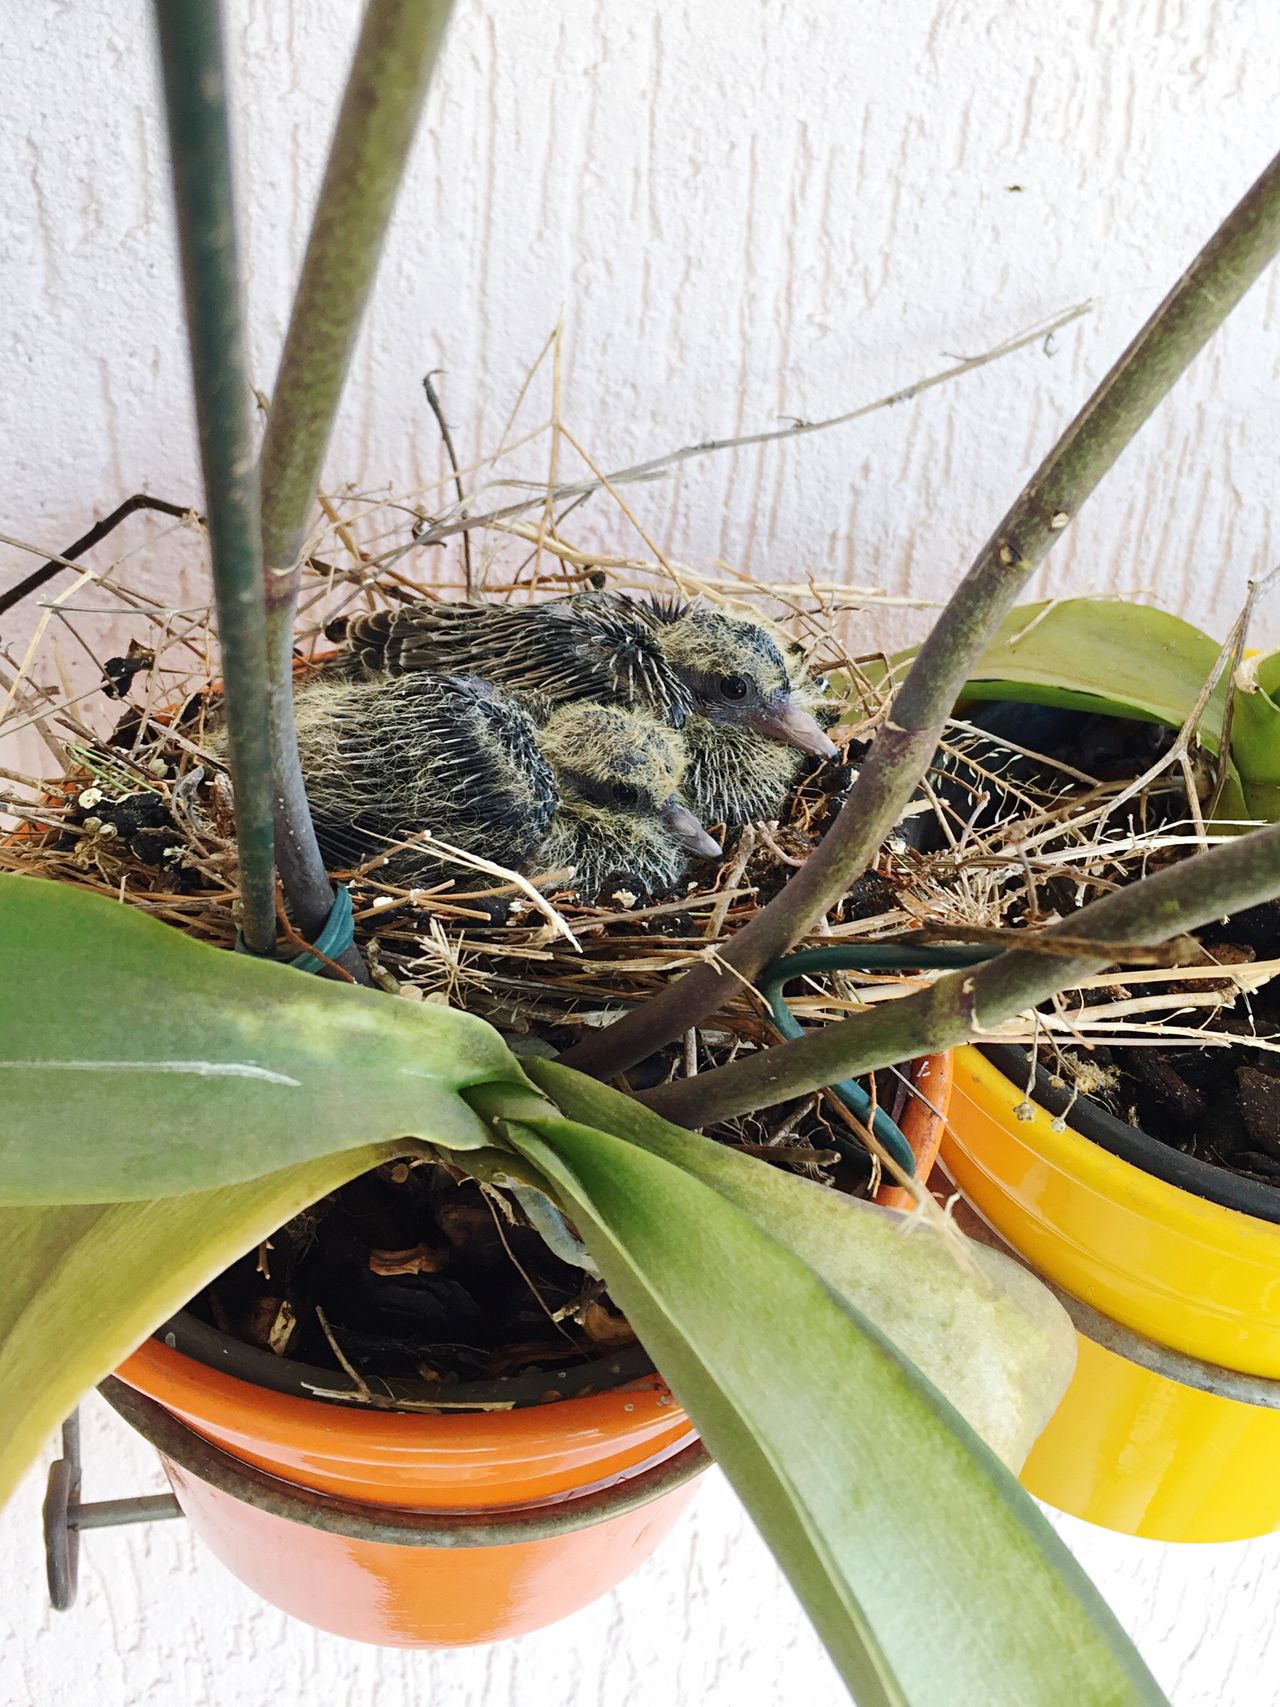 Pigeon Nest Nest Nesting Pigeon Bird Animal Nest Bird Nest Nestling Nestlings Pigeon Nestling Adapted To The City